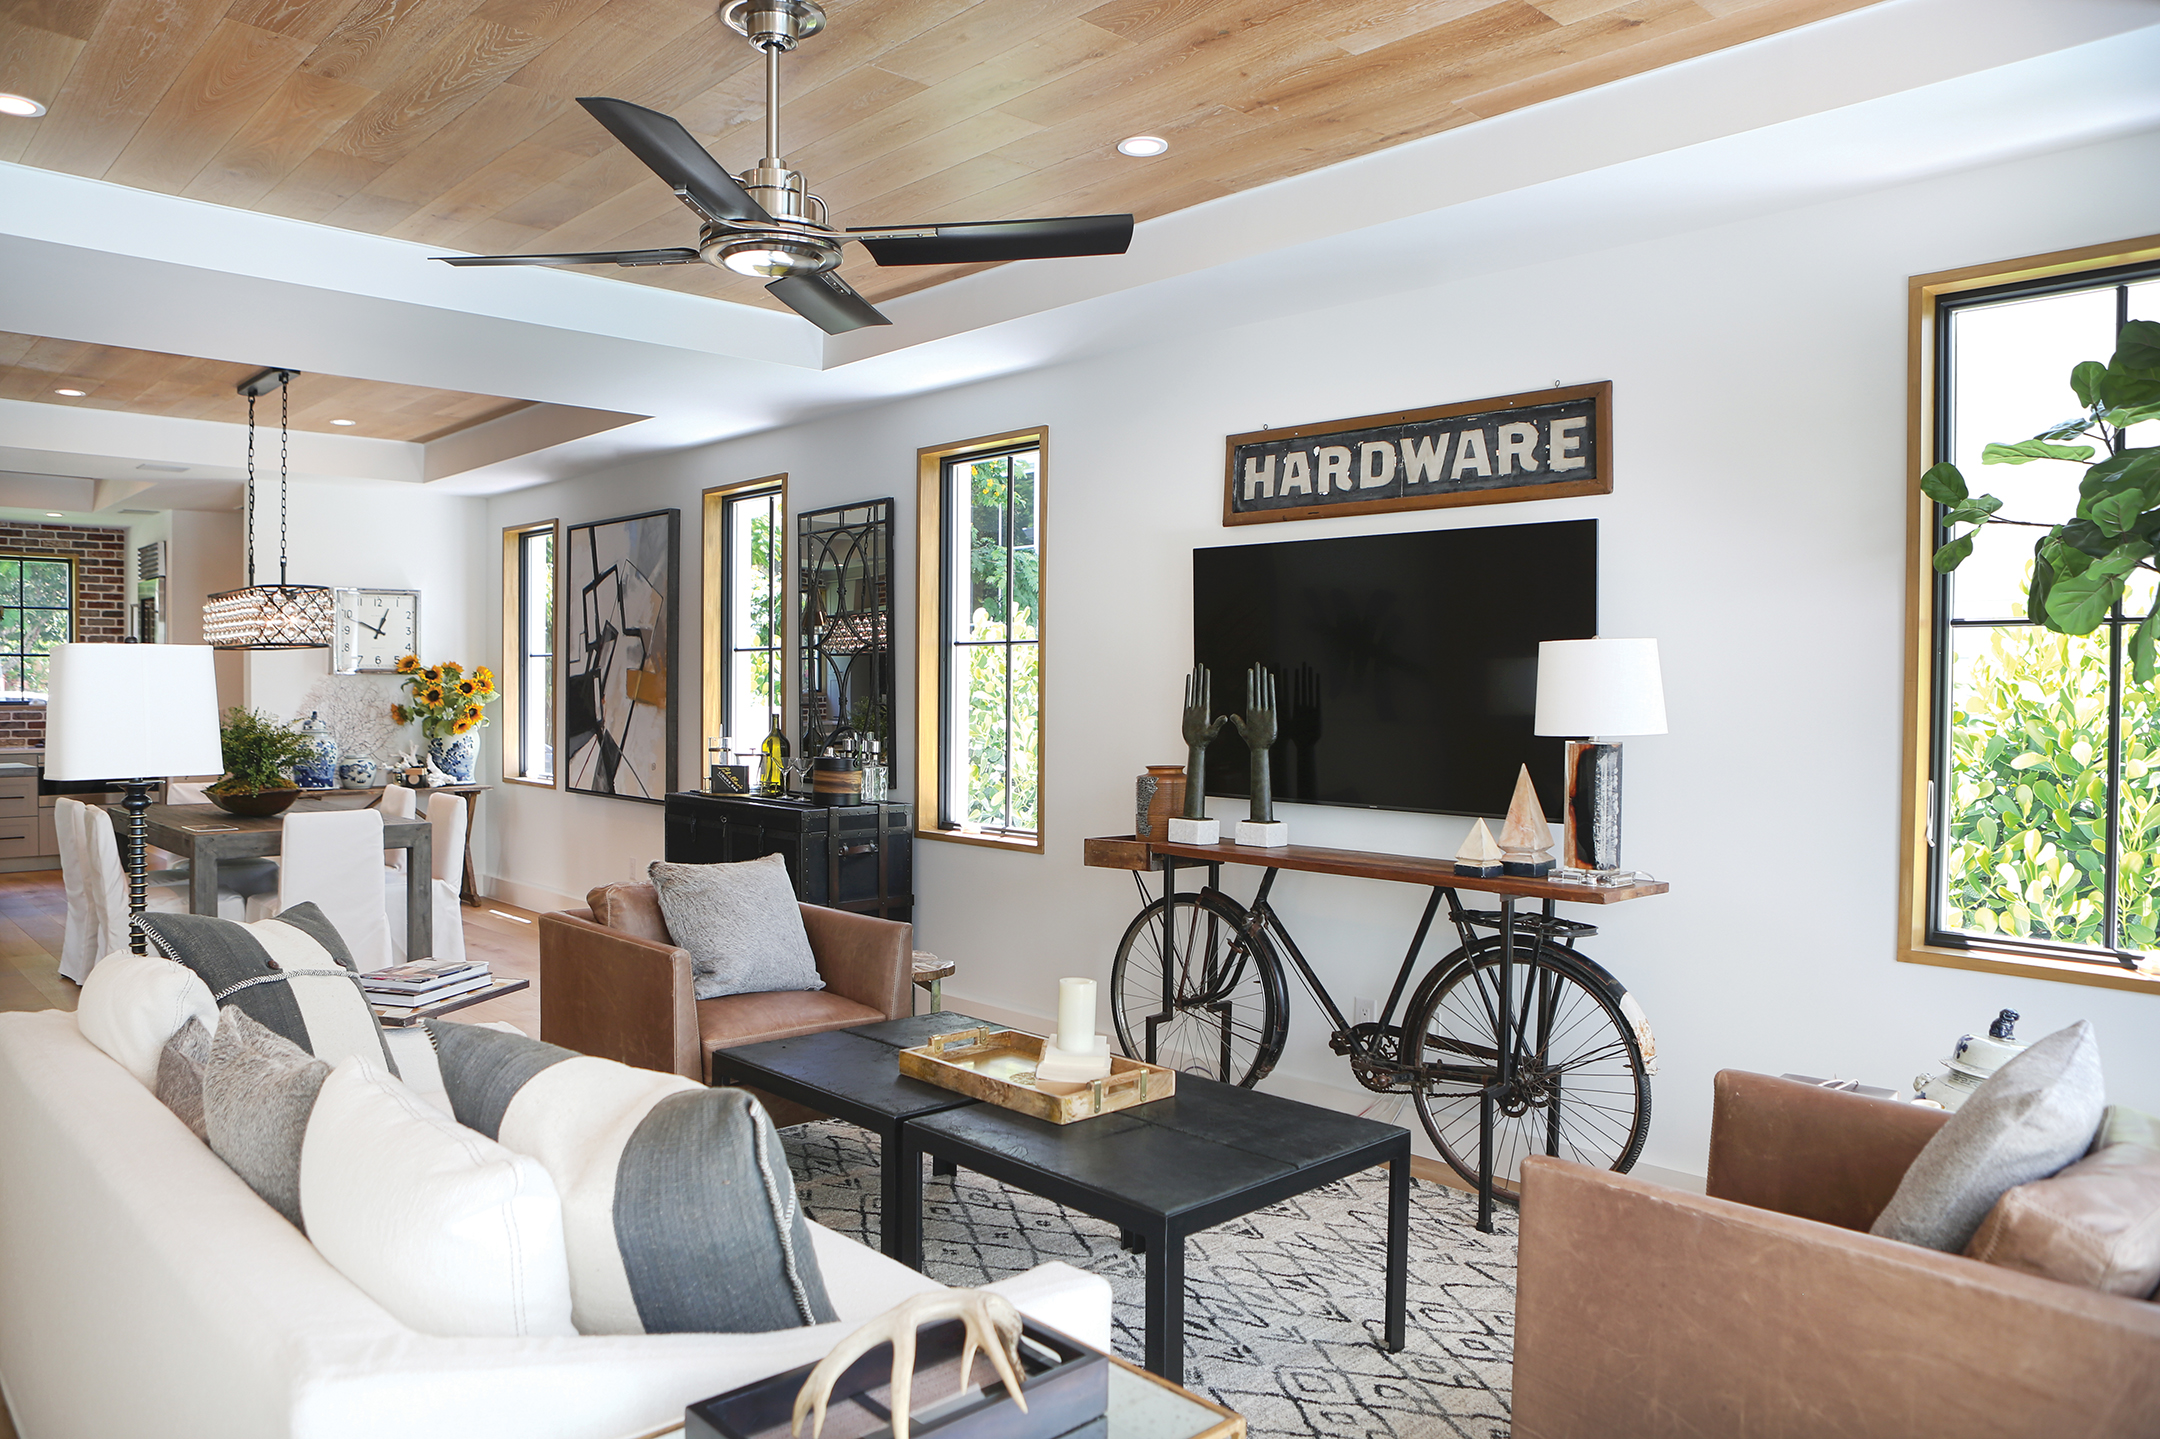 In the living room, the unique media stand was created from an old bicycle and enhances the urban loft feel of the home while giving a nod to the bikeable streets of Old Naples. A mix of leather and linen-covered furniture creates a beautiful seating arrangement. Here, the natural wood-cased windows add to the character of the home as they let the Florida sunshine through. This room is also adjacent to the pool area and courtyard so the new owners can easily take advantage of the outdoor space beyond.